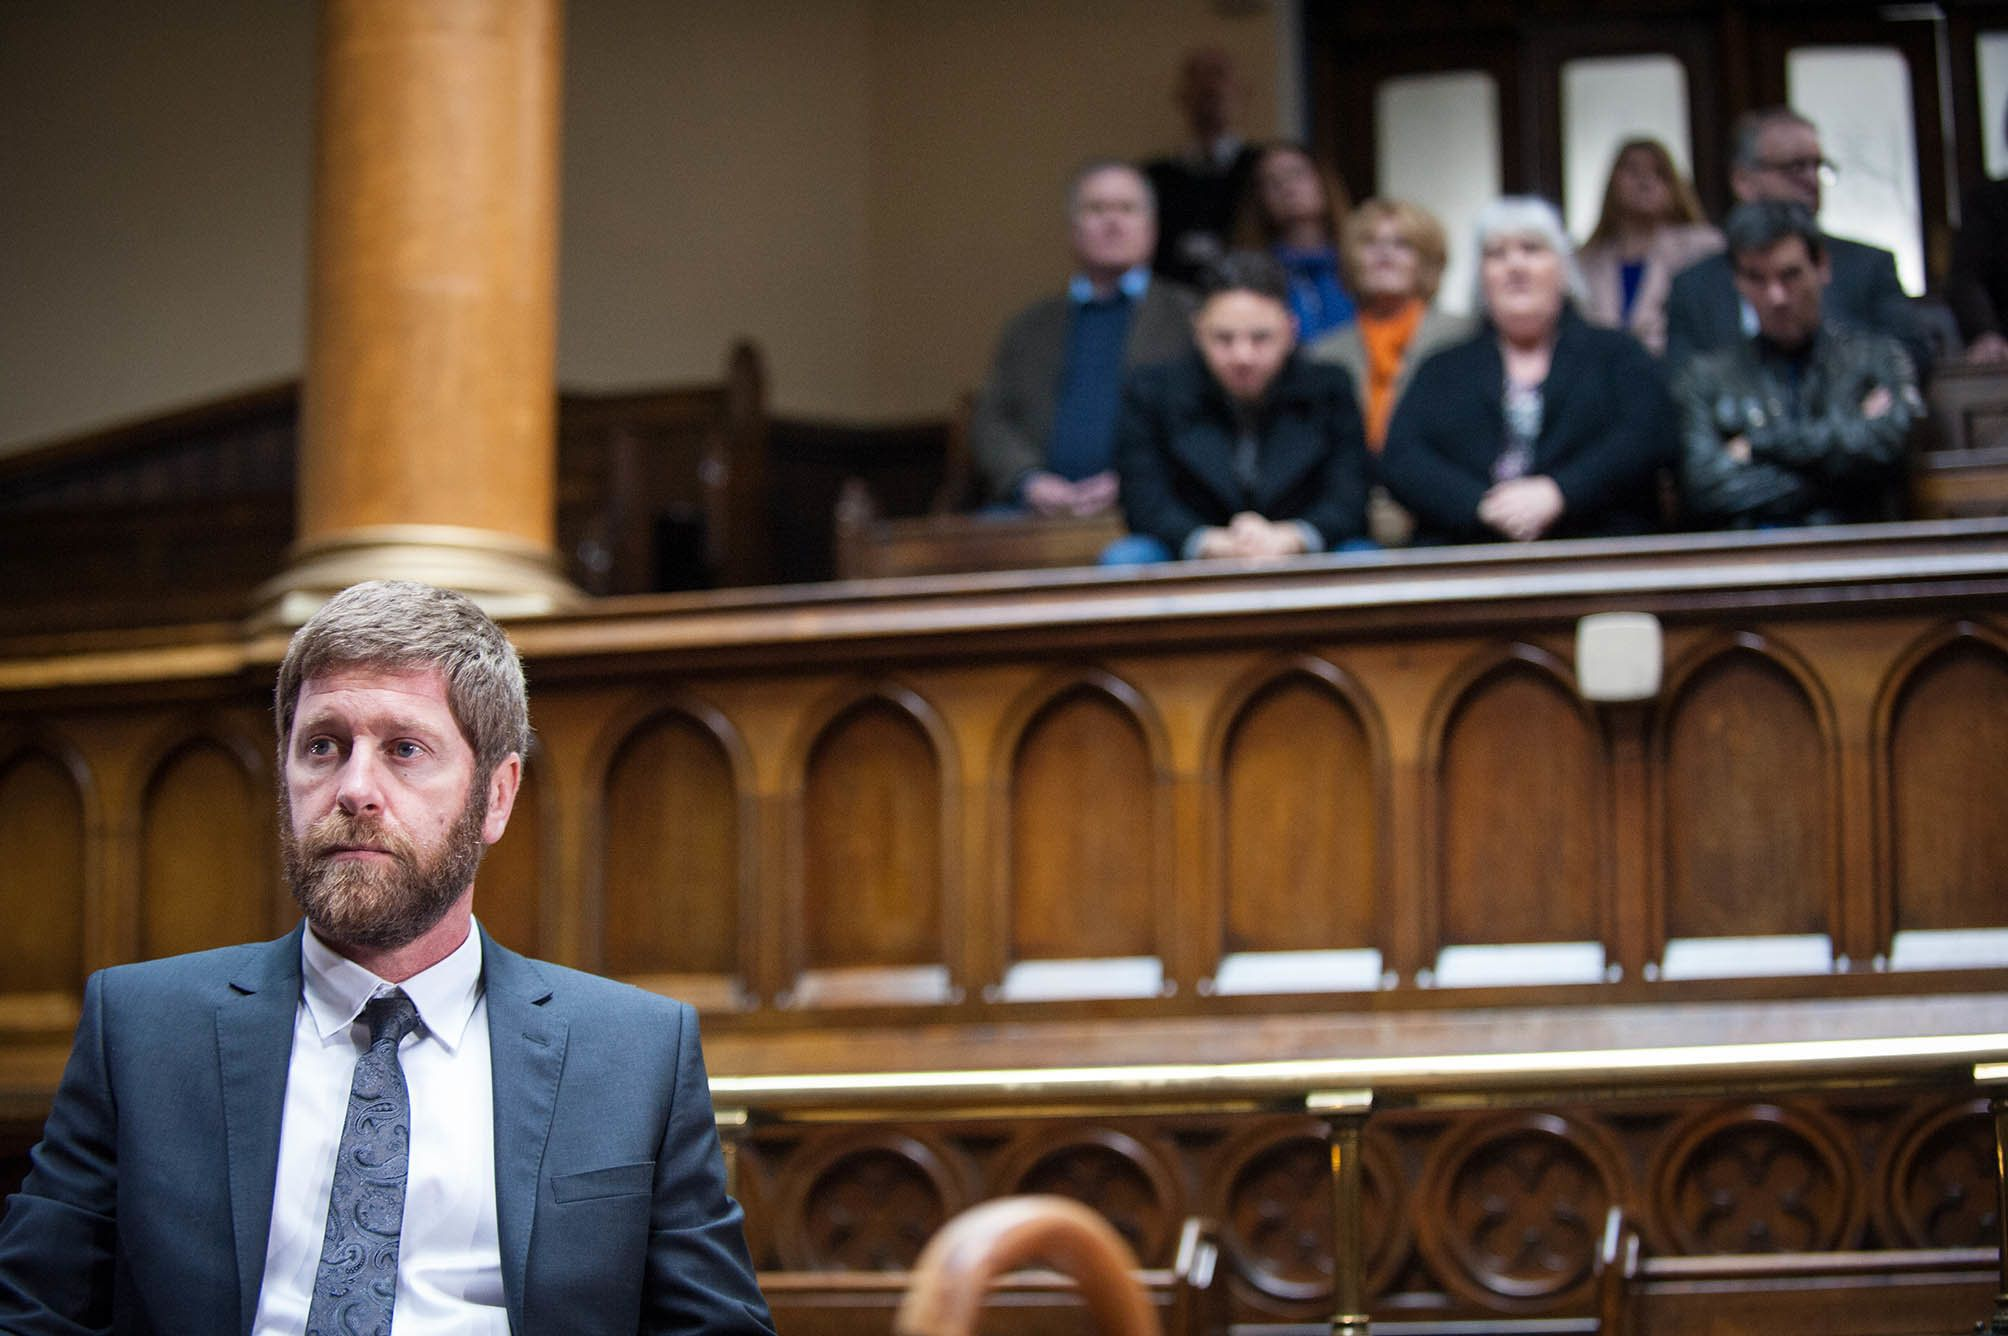 Images 'Emmerdale' Spoiler: Gordon's Trial Twists Teased By Ryan Hawley And Danny Miller | HuffPost UK 4 emmerdale